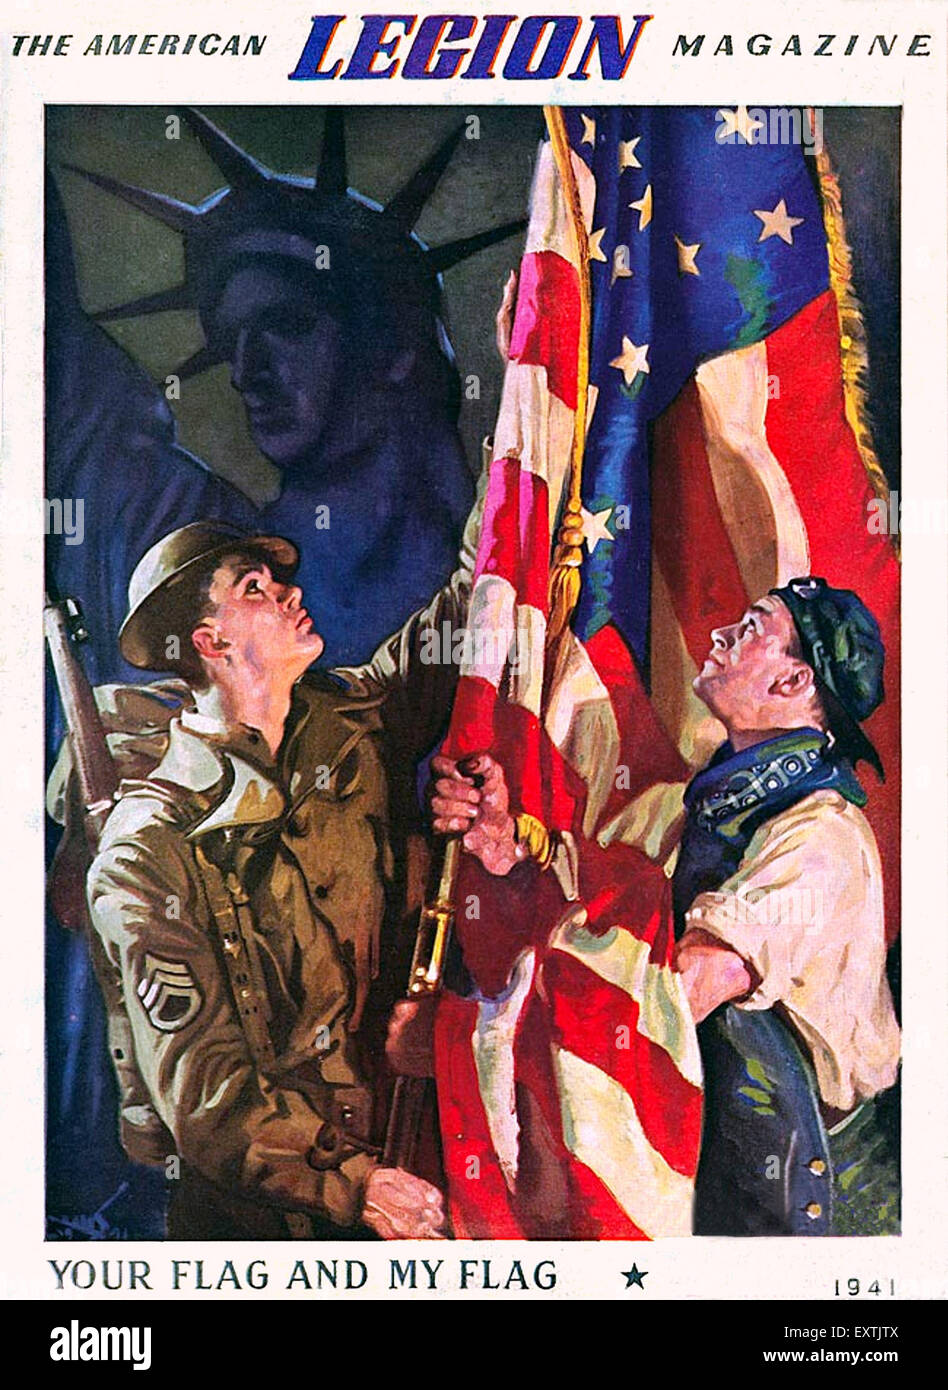 1940s USA The American Legion Magazine Cover - Stock Image